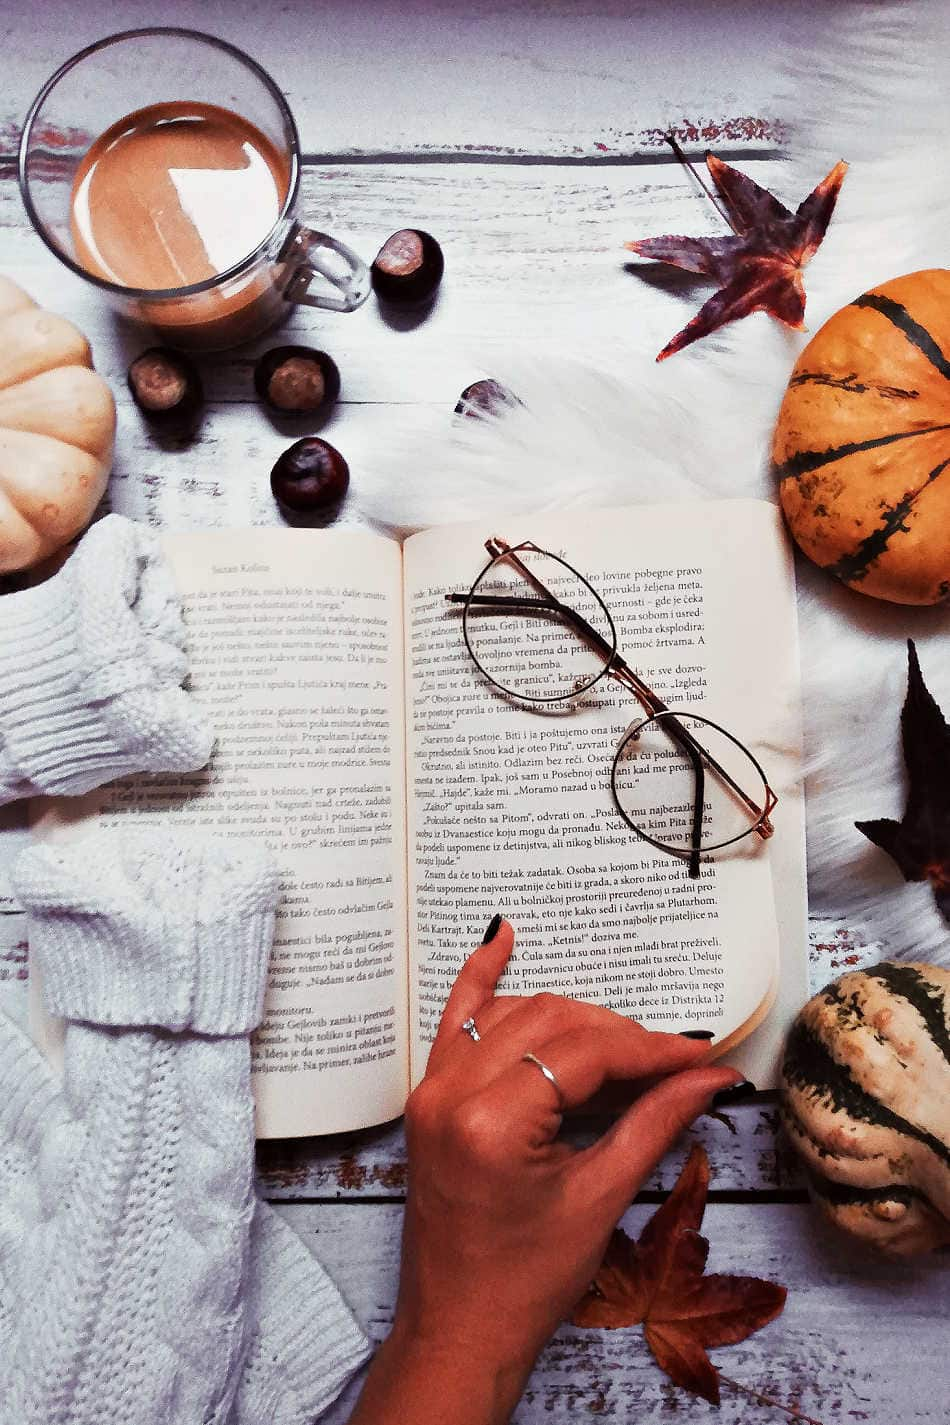 20 Books for Your Autumn Reading List | Growing Up Herbal | Fall is the perfect time to cozy up with a hot cup of tea and a good book. Here are 20 fall-inspired books for your autumn reading list.